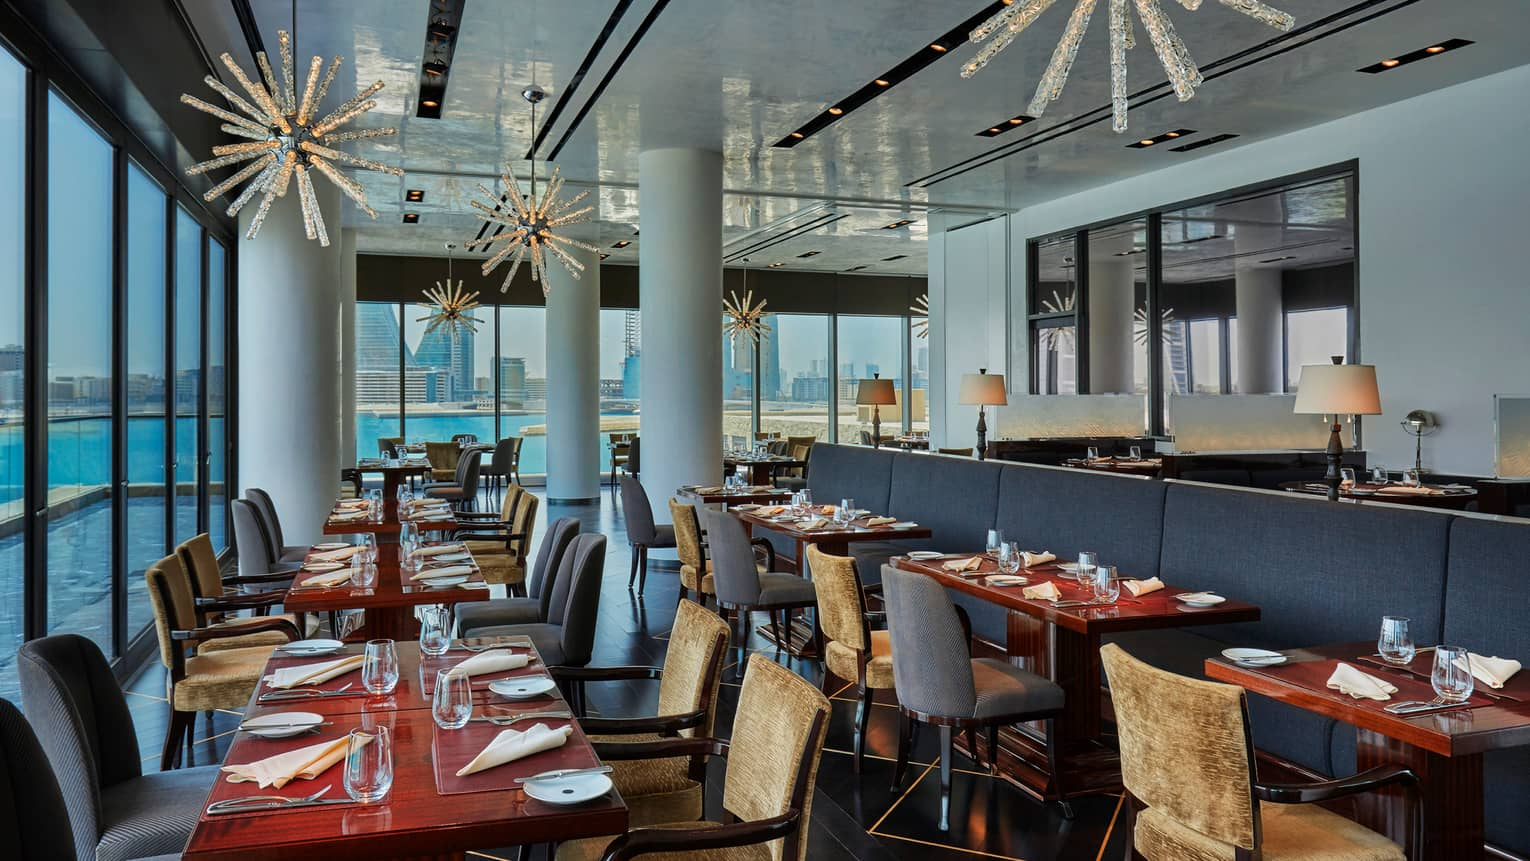 CUT by Wolfgang Puck dining room during day with tables and chairs, white pillars, blue banquette